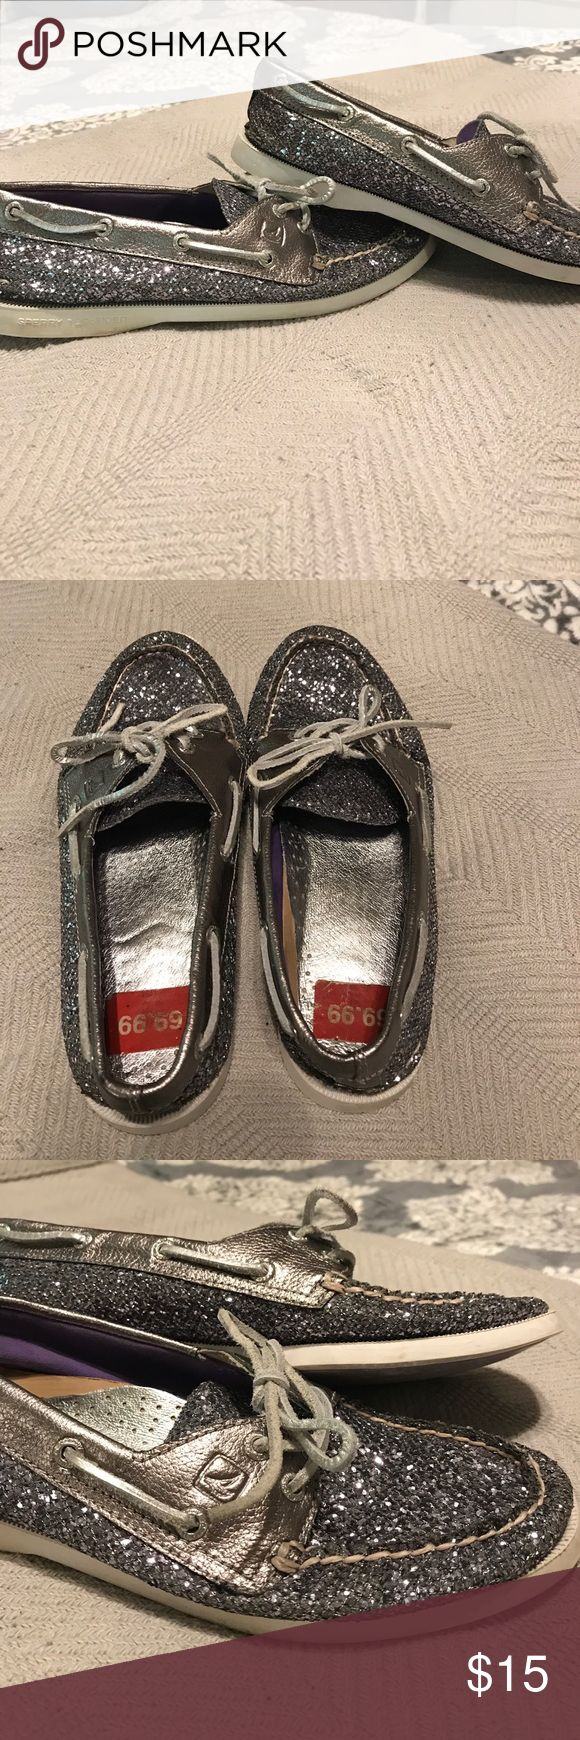 SALE!! Silver Glitter Sperry Top-Sider's Size 7 PRICE REDUCED!! Gently used silver with purple undertones size 7 Sperry Top-Sider boat shoes... These are still in great condition, a little flat from storage but only worn a couple of times! Very sparkly, glitter with silvery/gunmetaly colored leather trim and laces. White rubber sole, lavender rubber on bottom. Nice, unique shoes, fun for summer! Inside in great condition as well. Make me an offer! Sperry Top-Sider Shoes Flats & Loafers